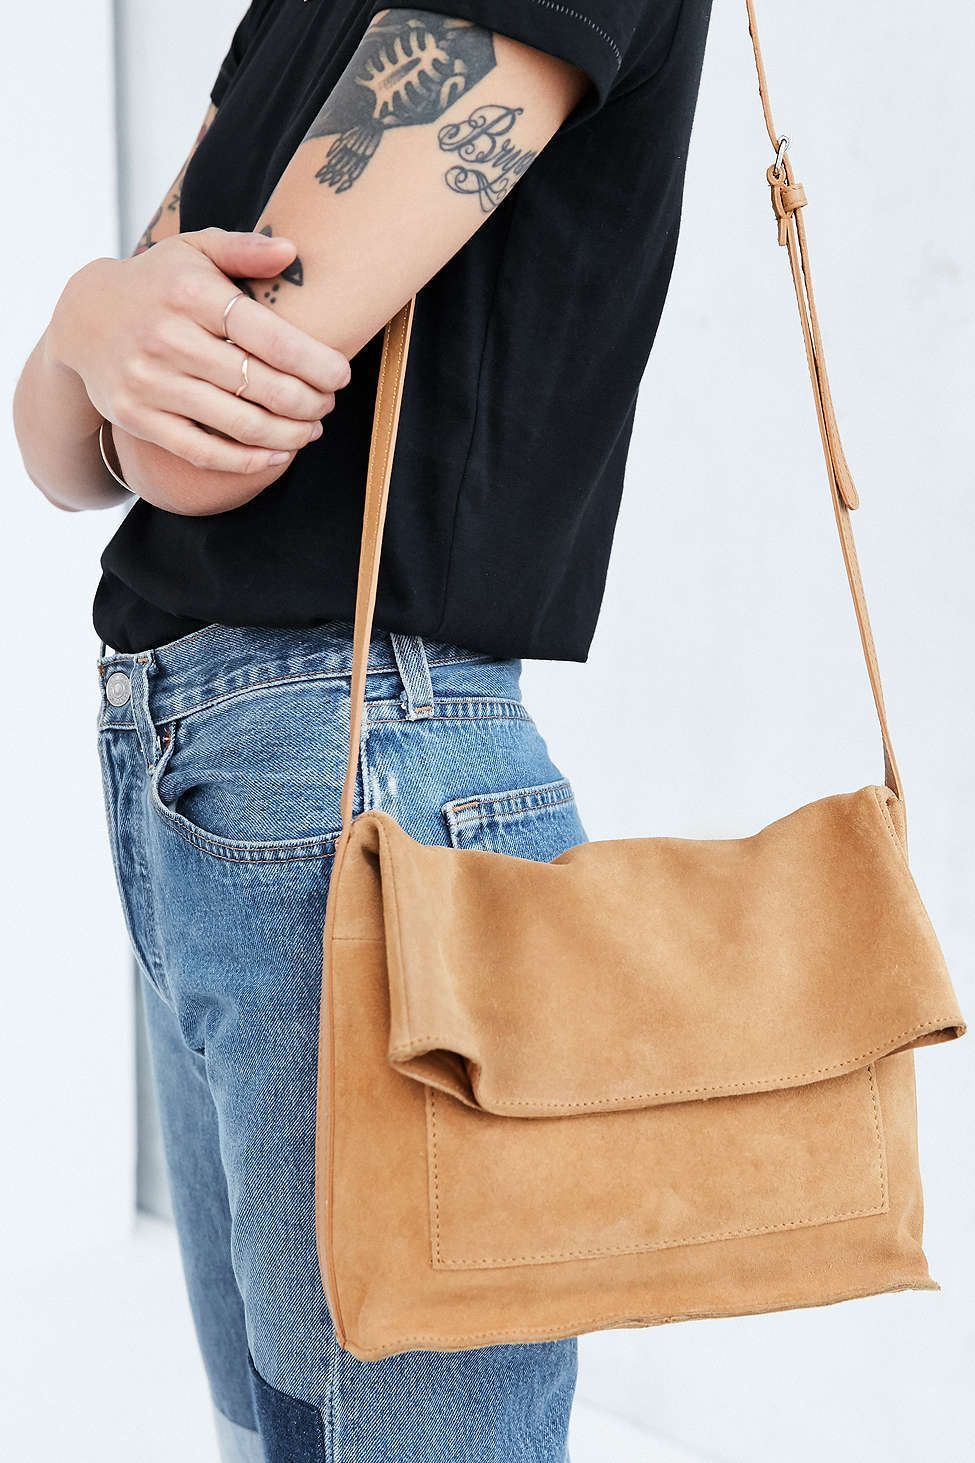 bdg lindstrom fold crossbody bag accessorize bags, crossbody bag  bdg lindstrom fold crossbody bag urban outfitters